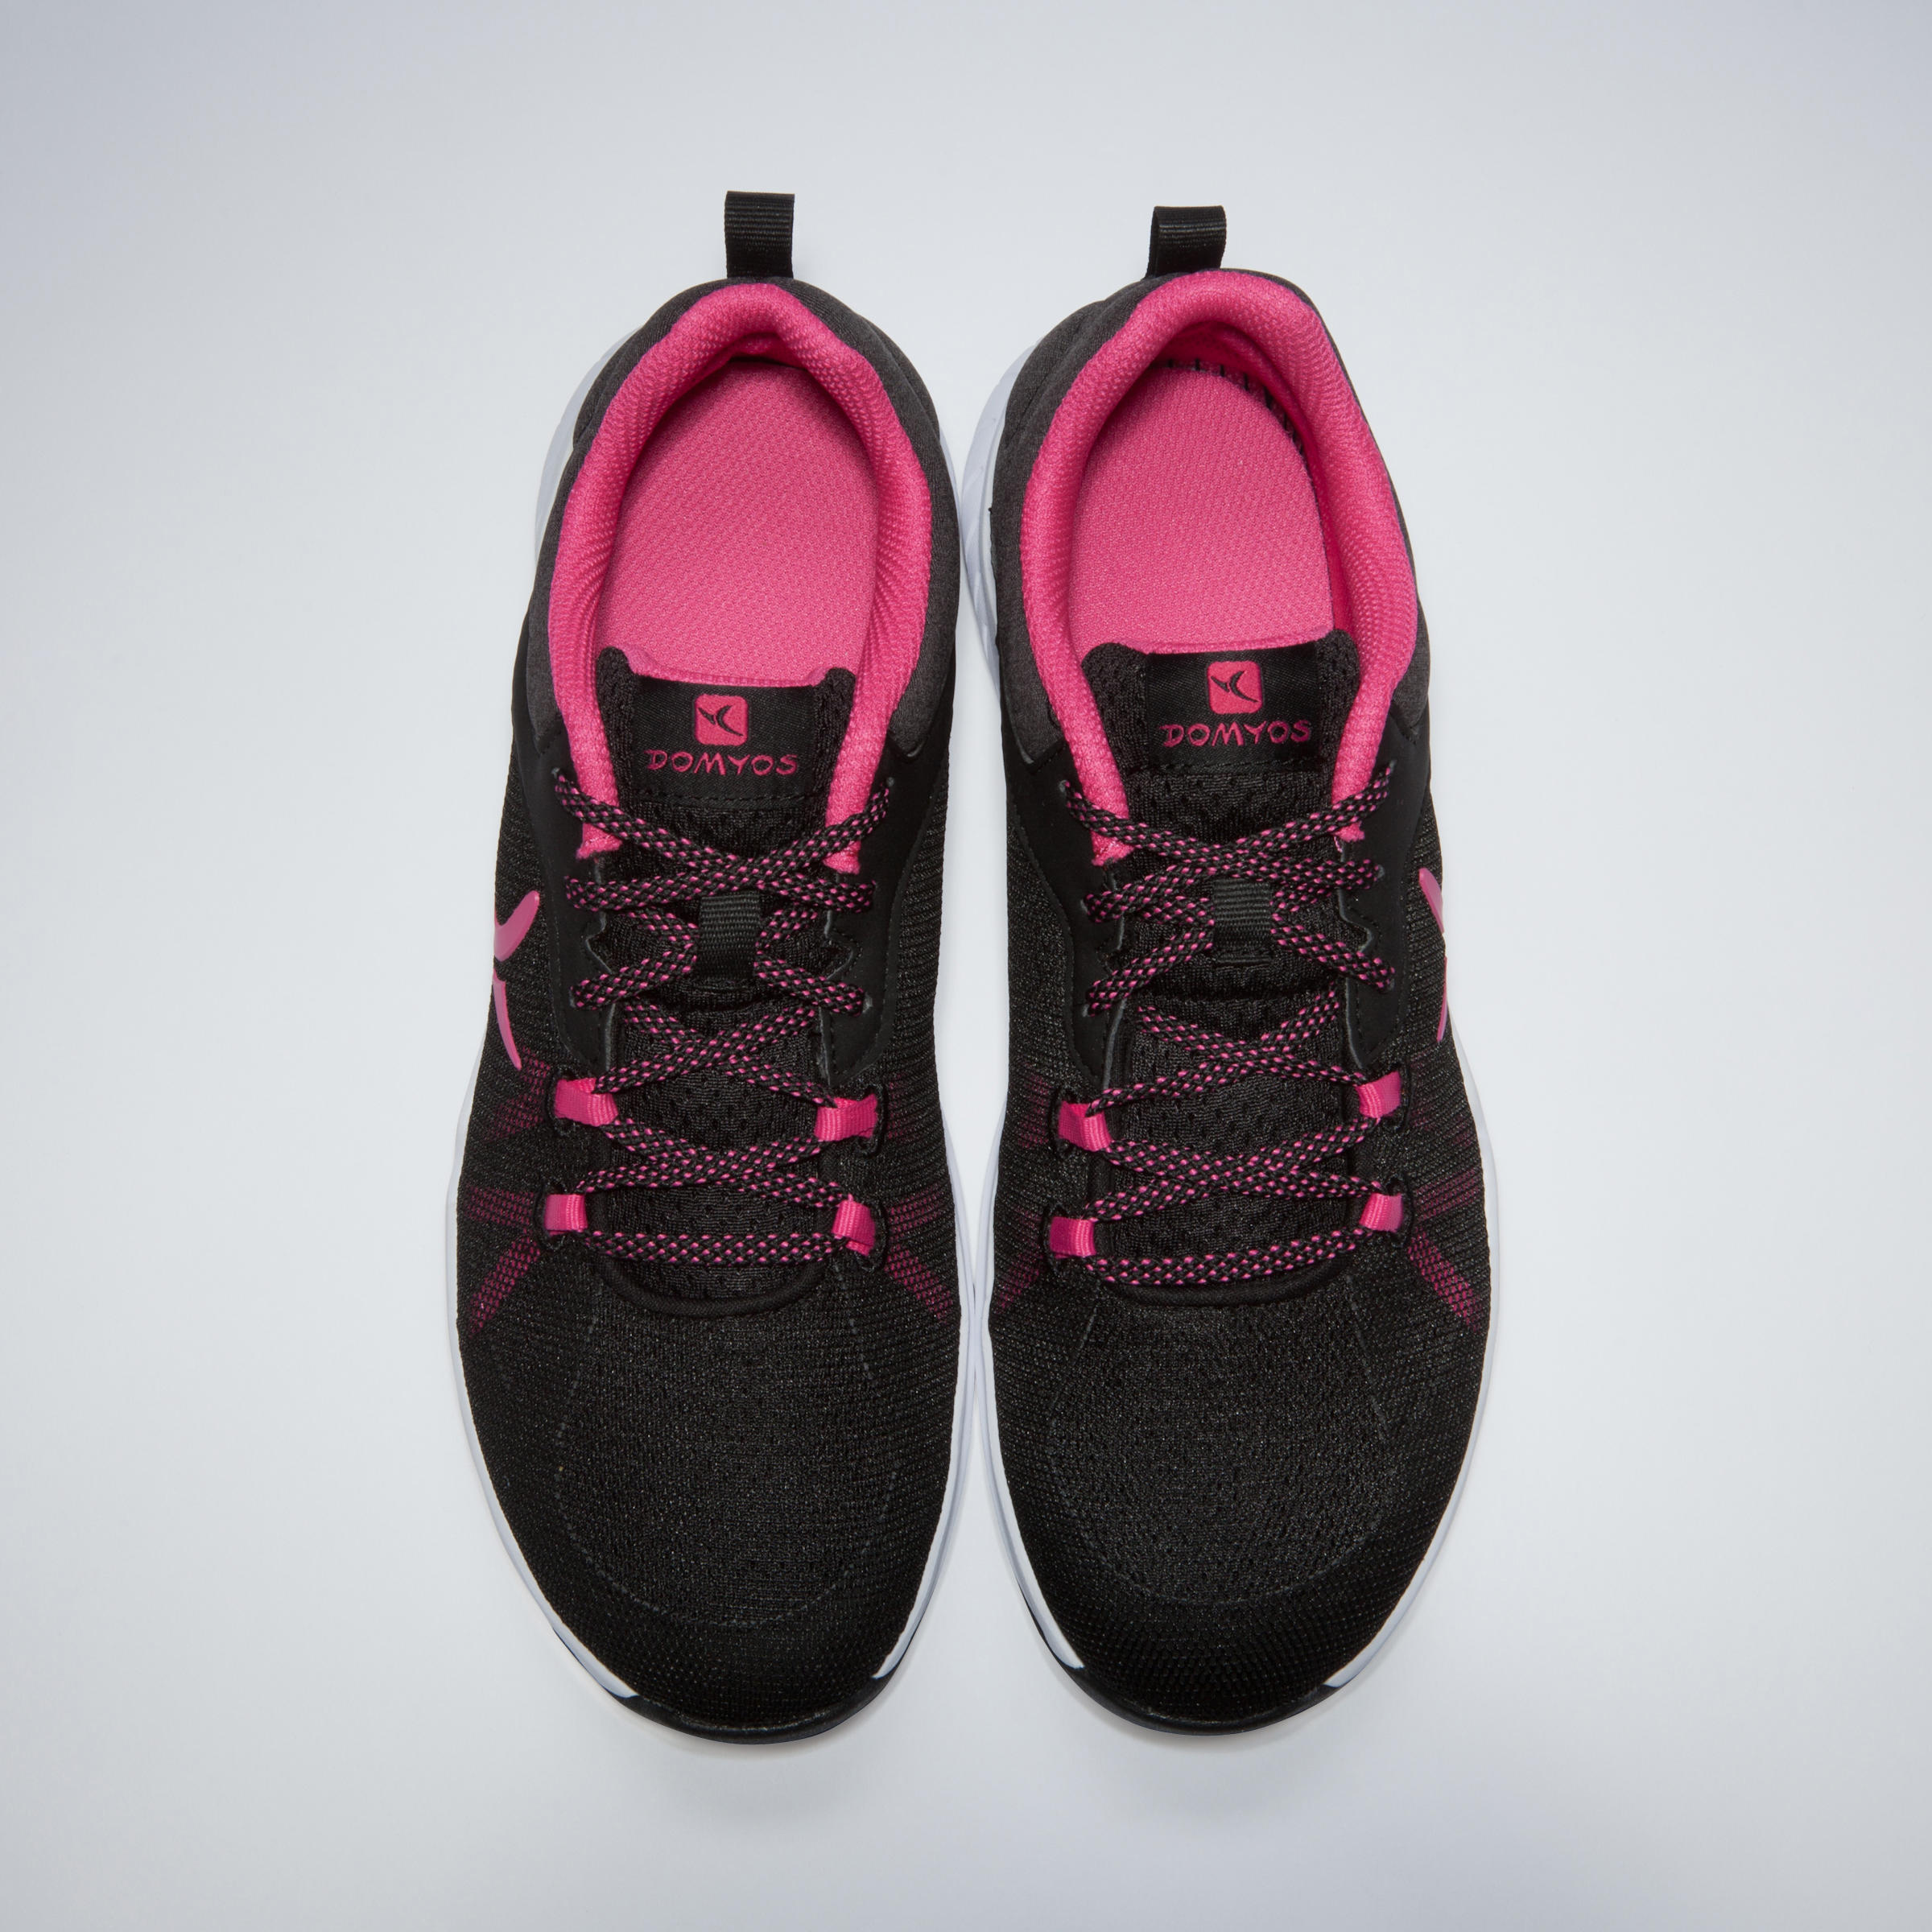 100 Women's Cardio Fitness Shoes - Black/Pink